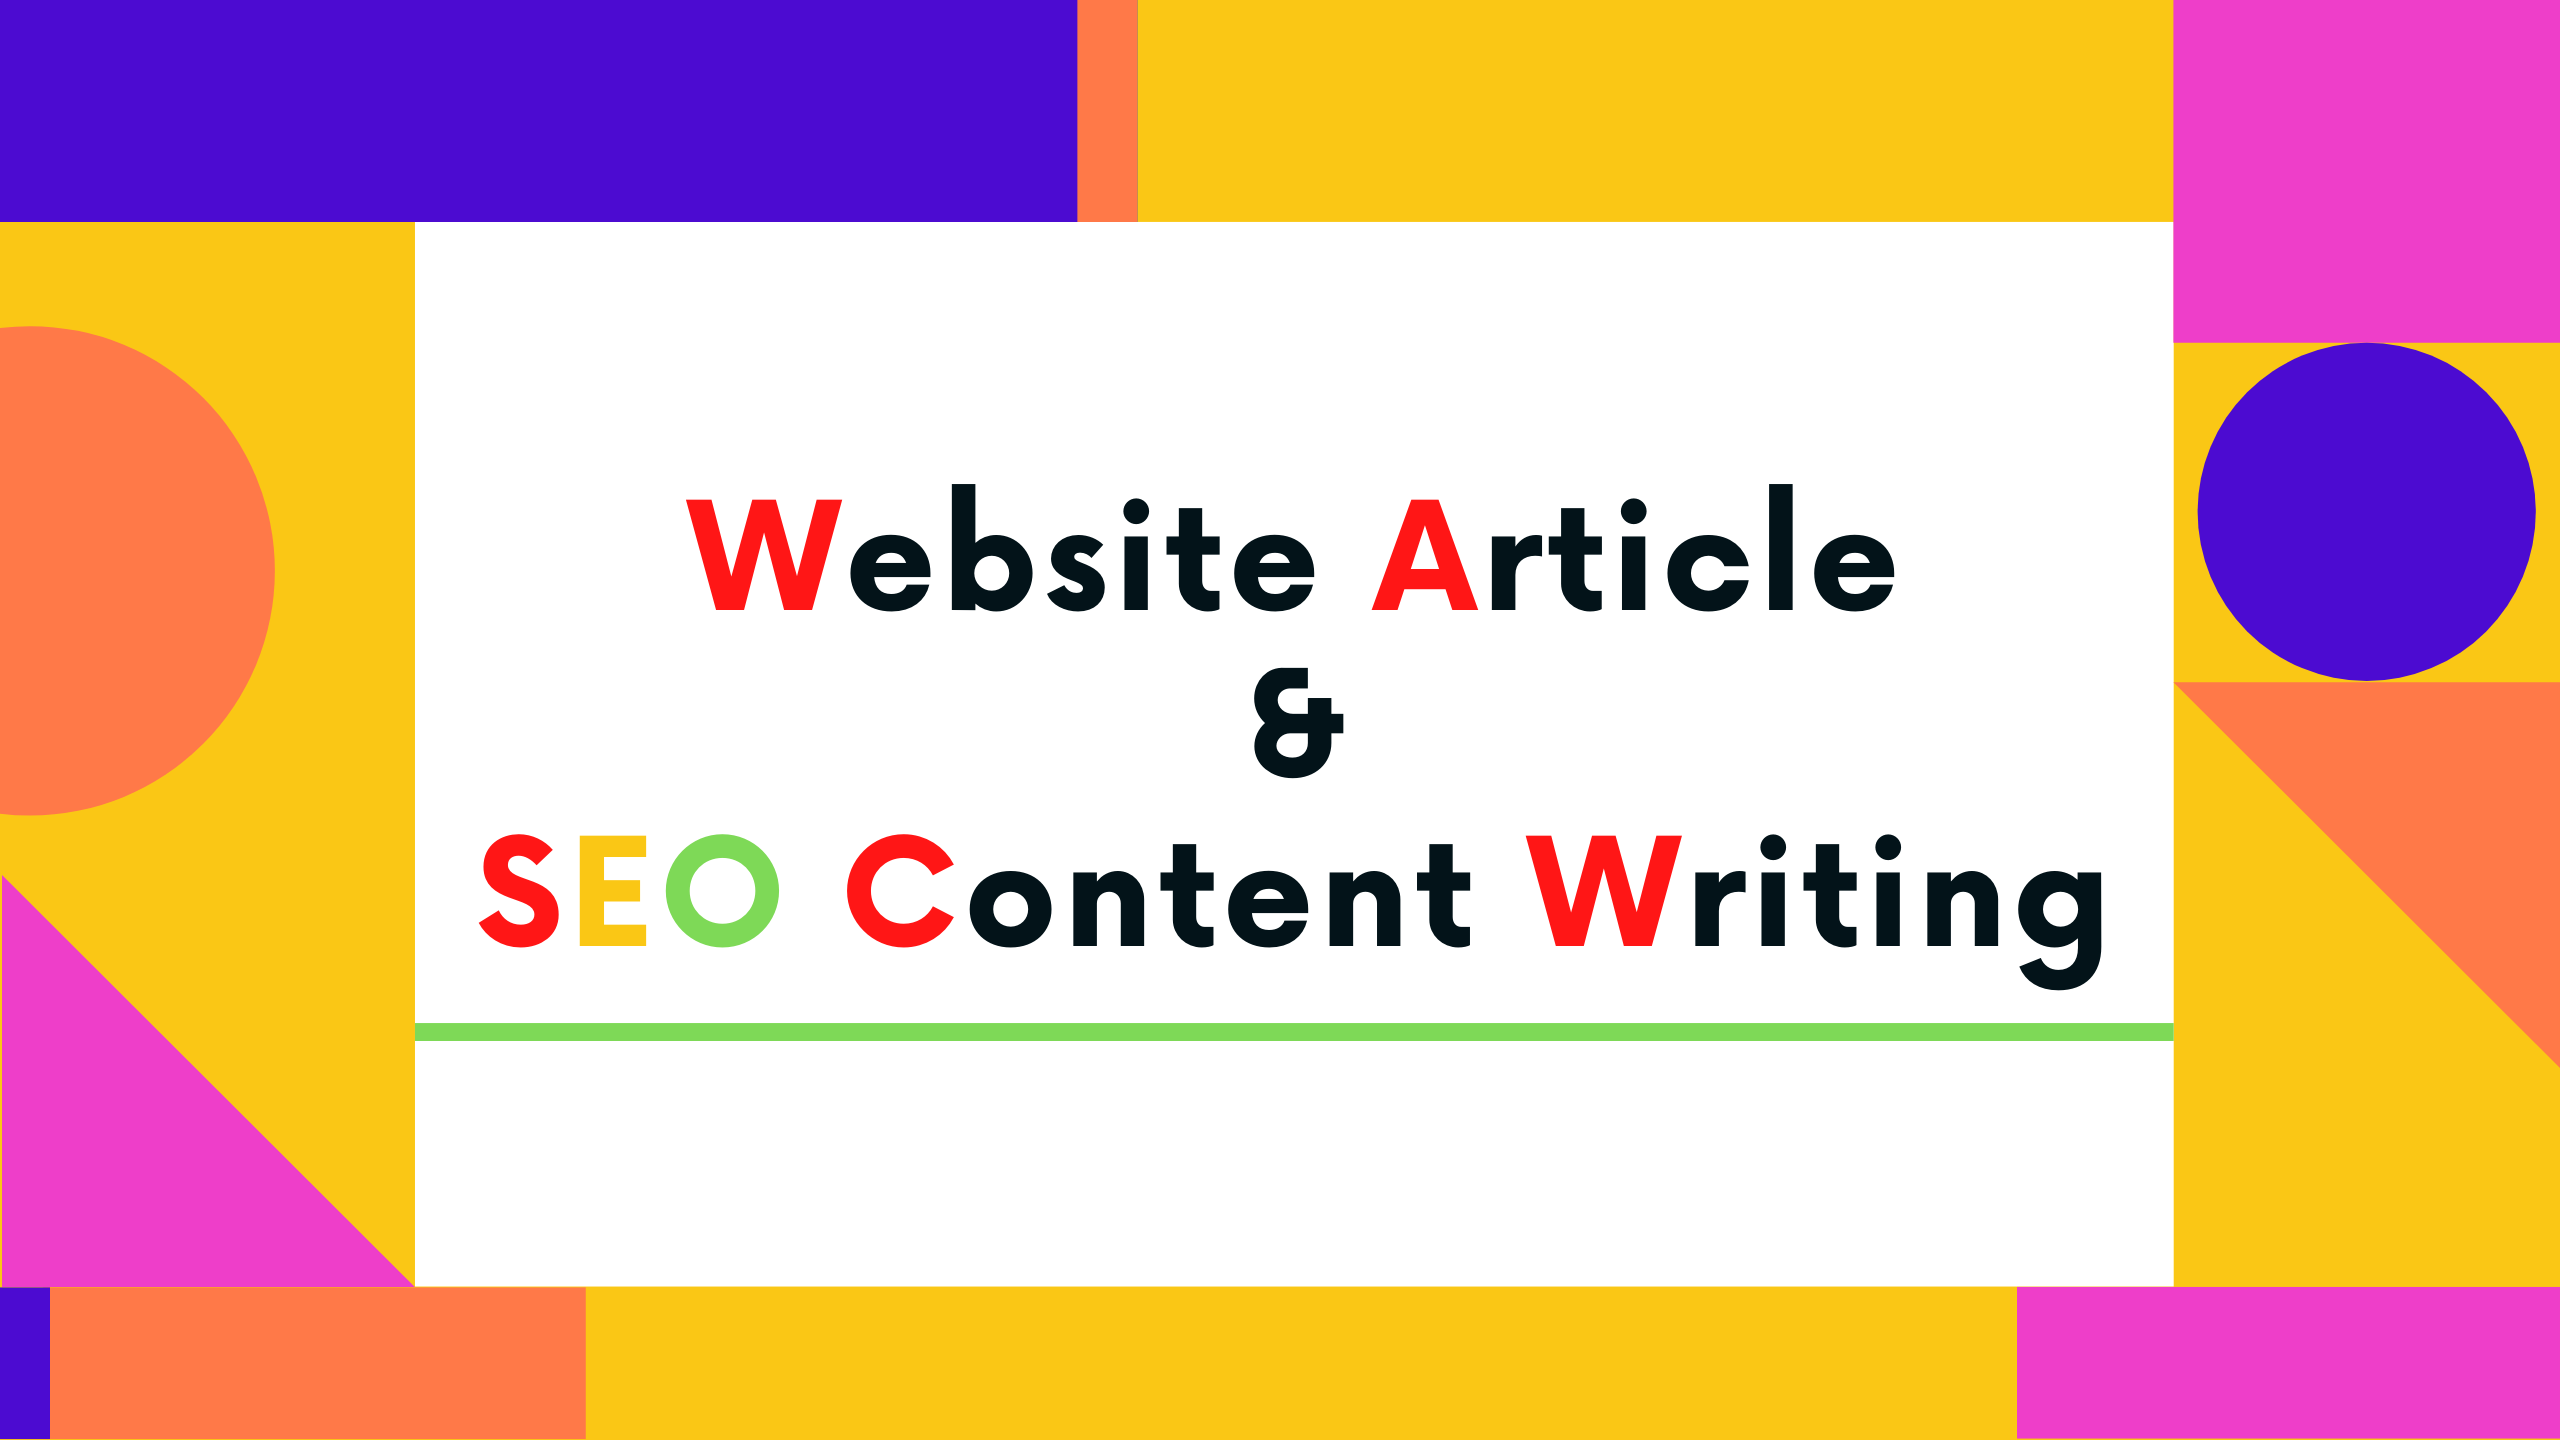 Write 1200+word SEO Optimized Content and Website Article writing